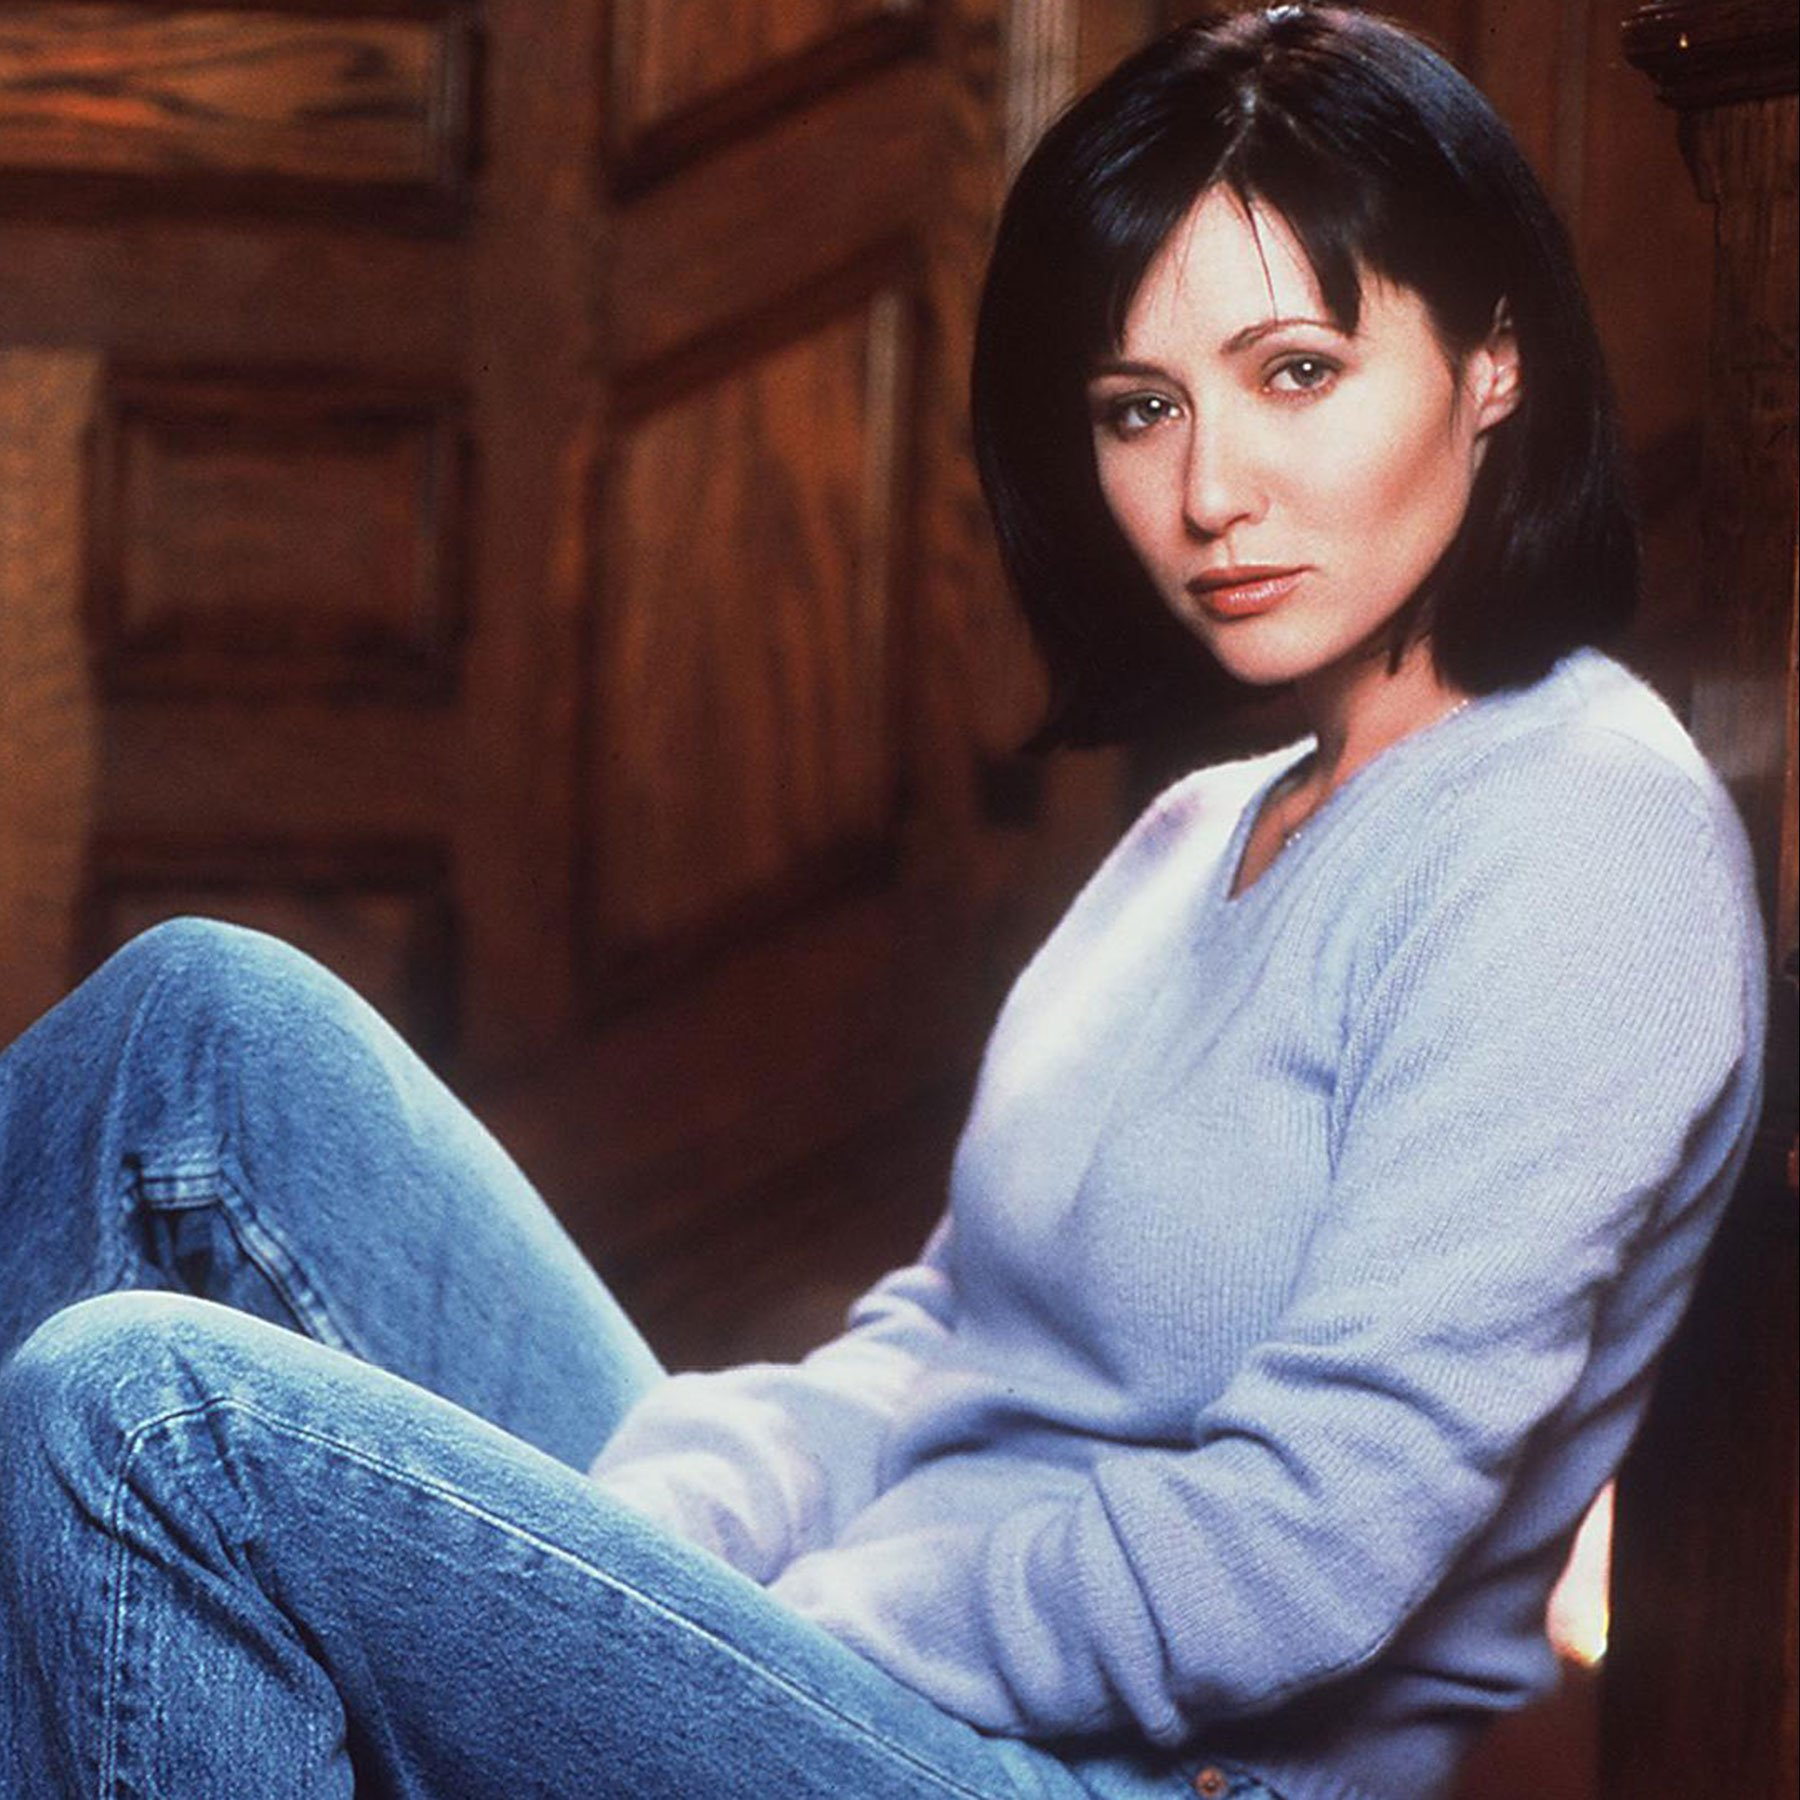 Shannen Doherty on Charmed reboot's 'terrible, offensive' description